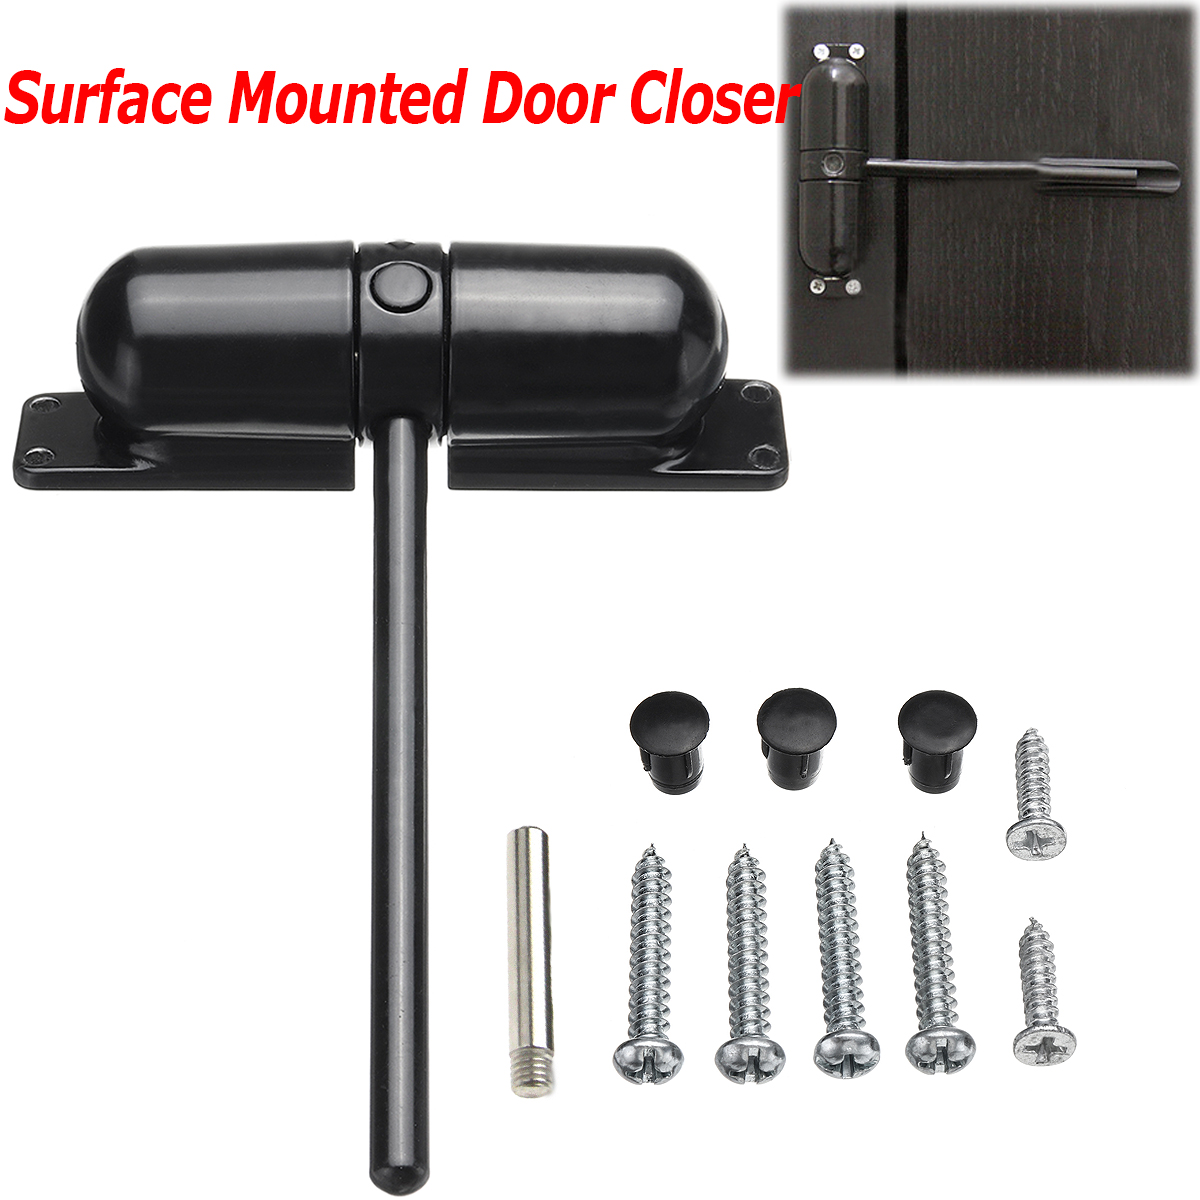 Surface Mounted Door Gate Closer Black Outdoor Spring Elastic Loaded Adjustable